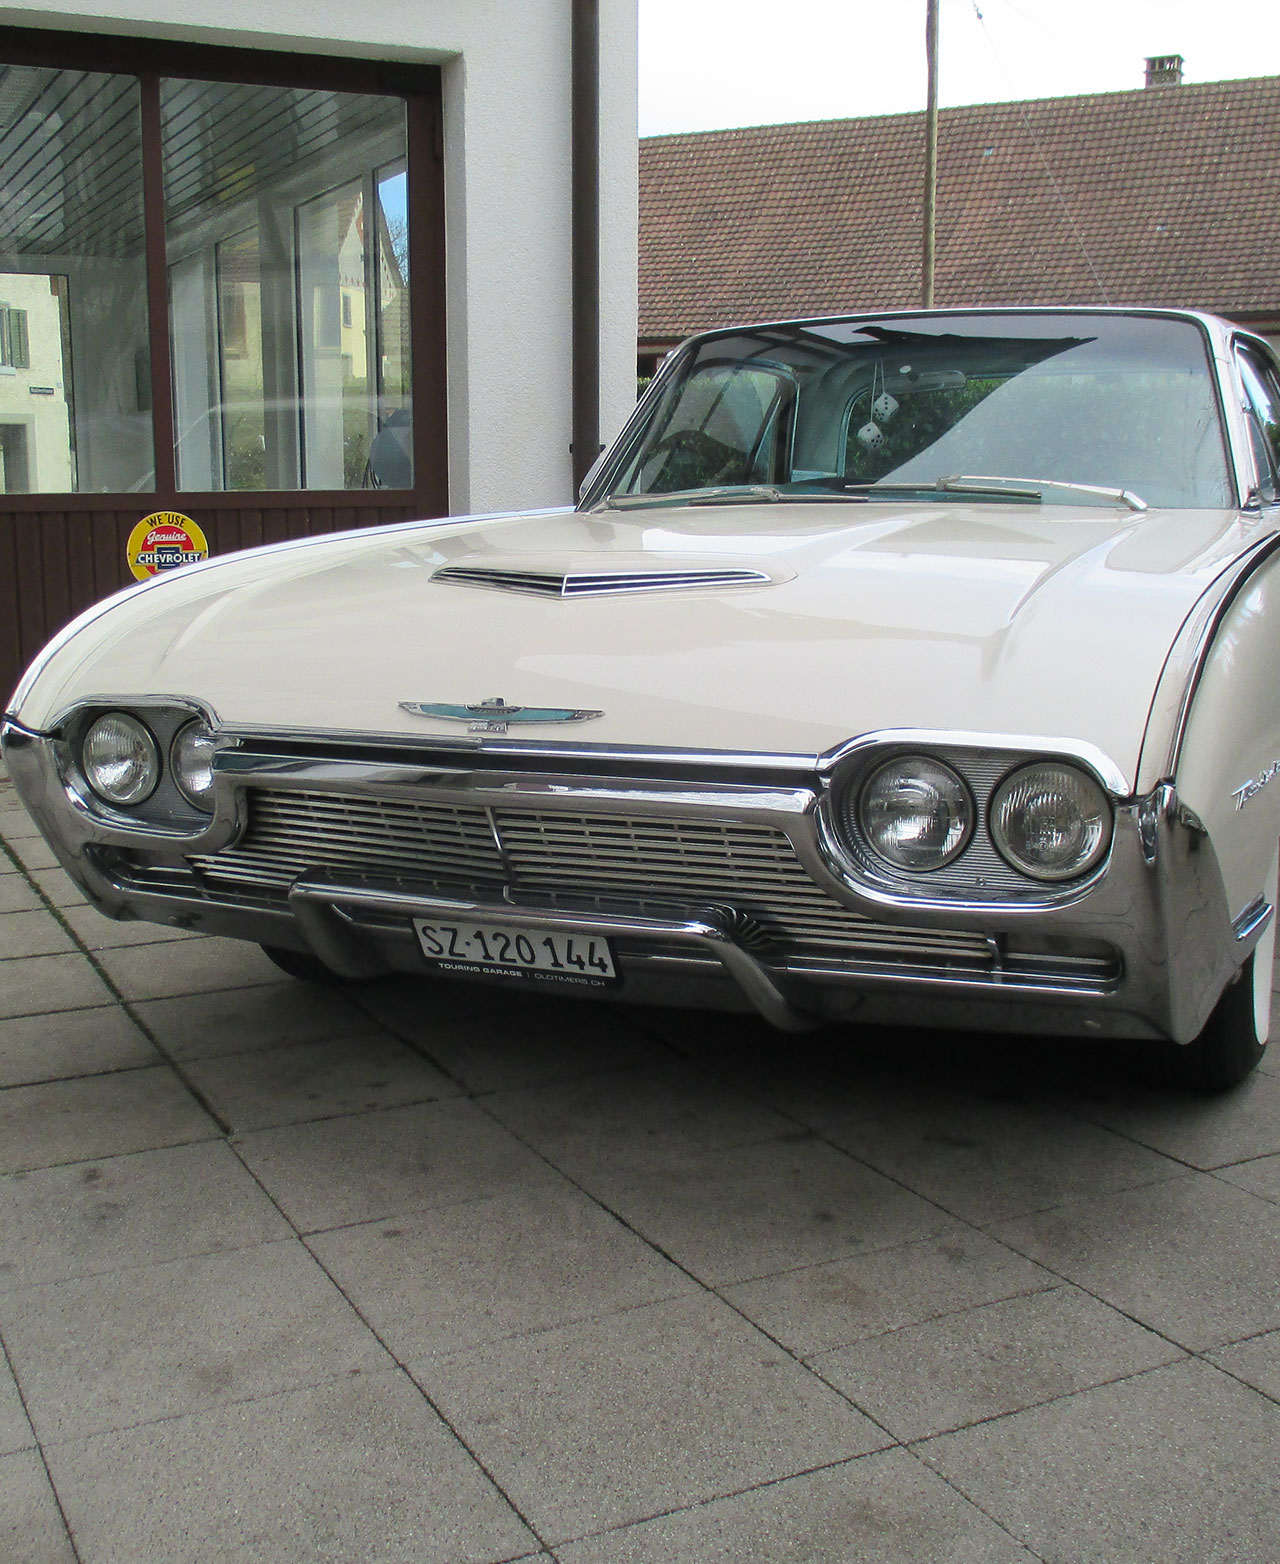 Ford Thunderbird '62